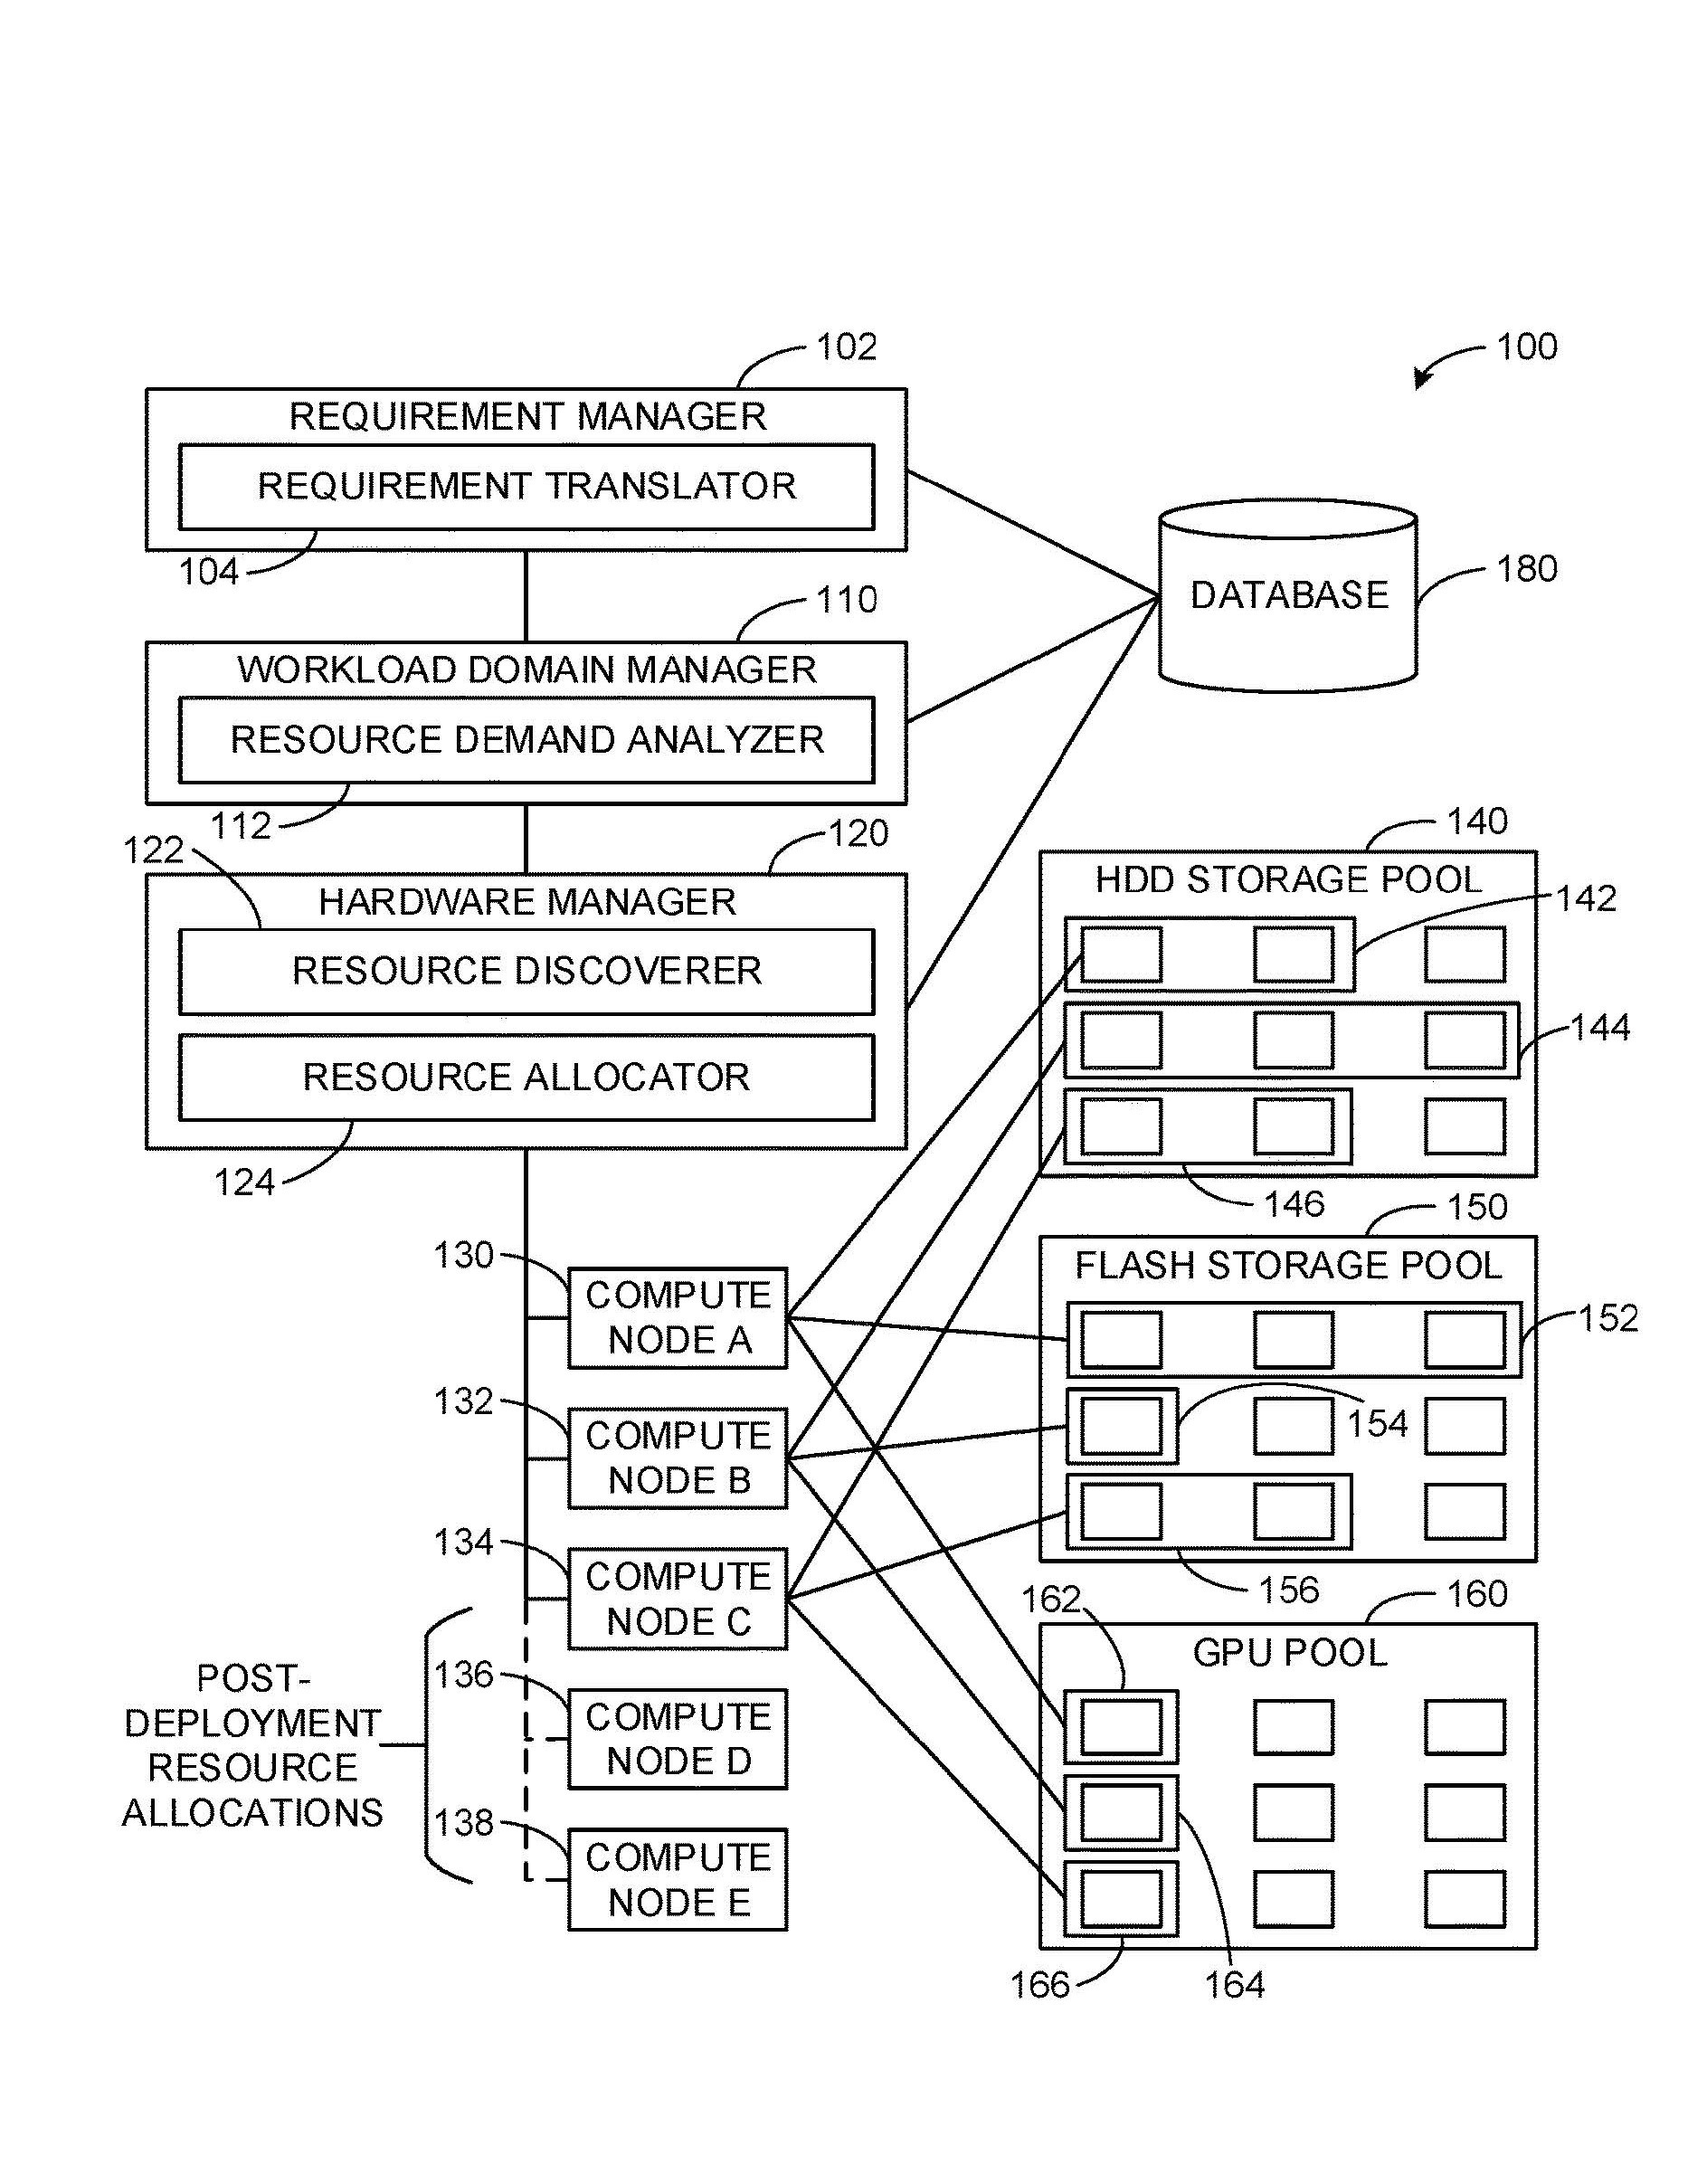 METHODS AND APPARATUS TO GENERATE AND MANAGE WORKLOAD DOMAINS IN VIRTUAL SERVER RACKS